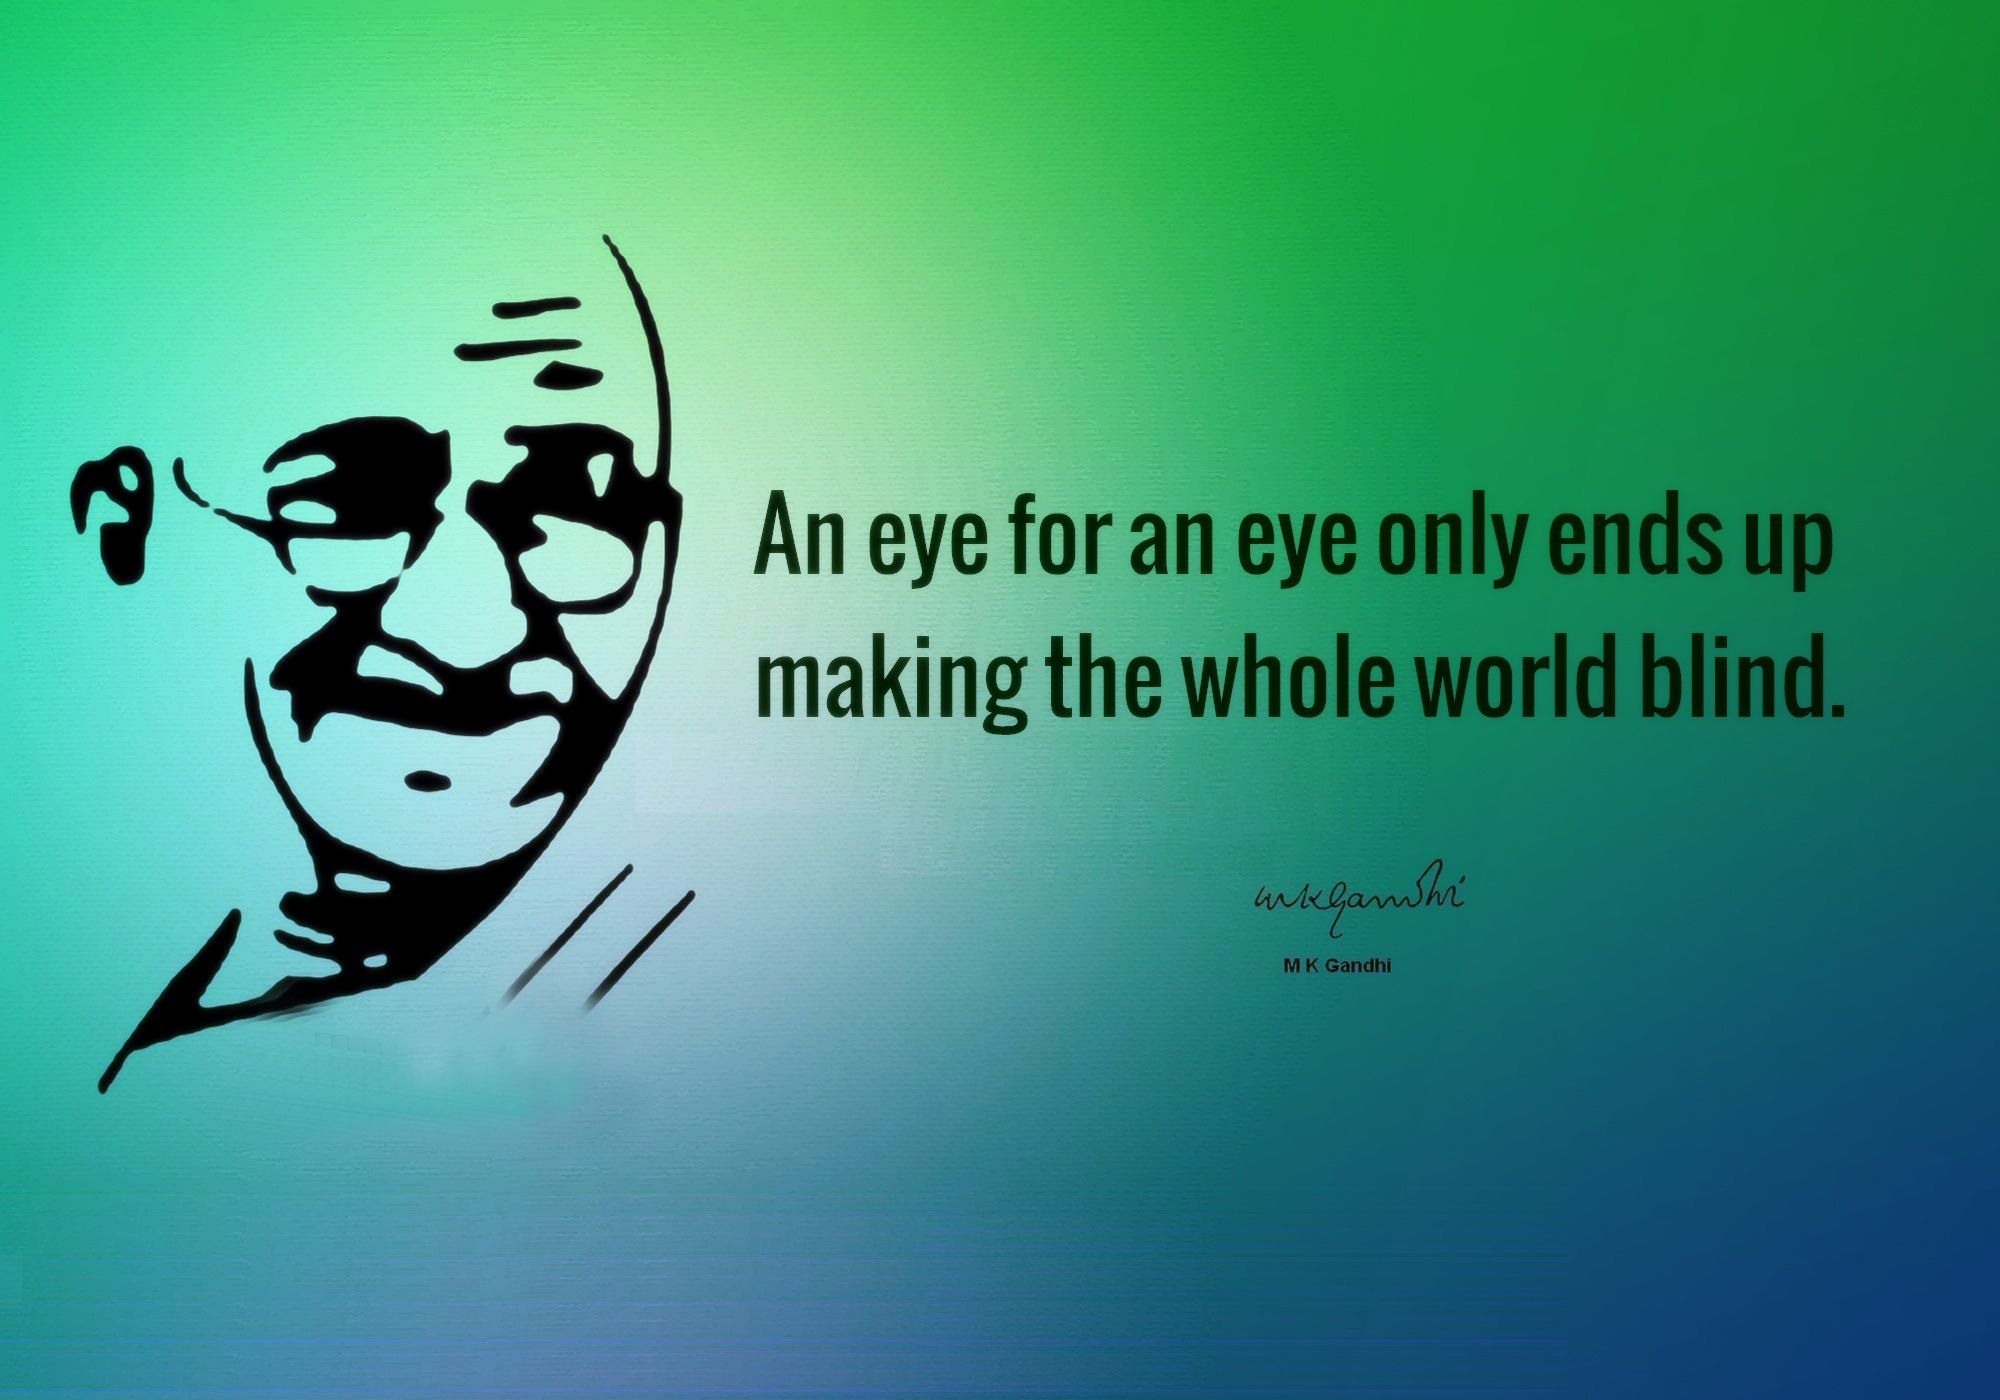 Download Gandhi Jayanti Wishes Photos For Instagram Hike